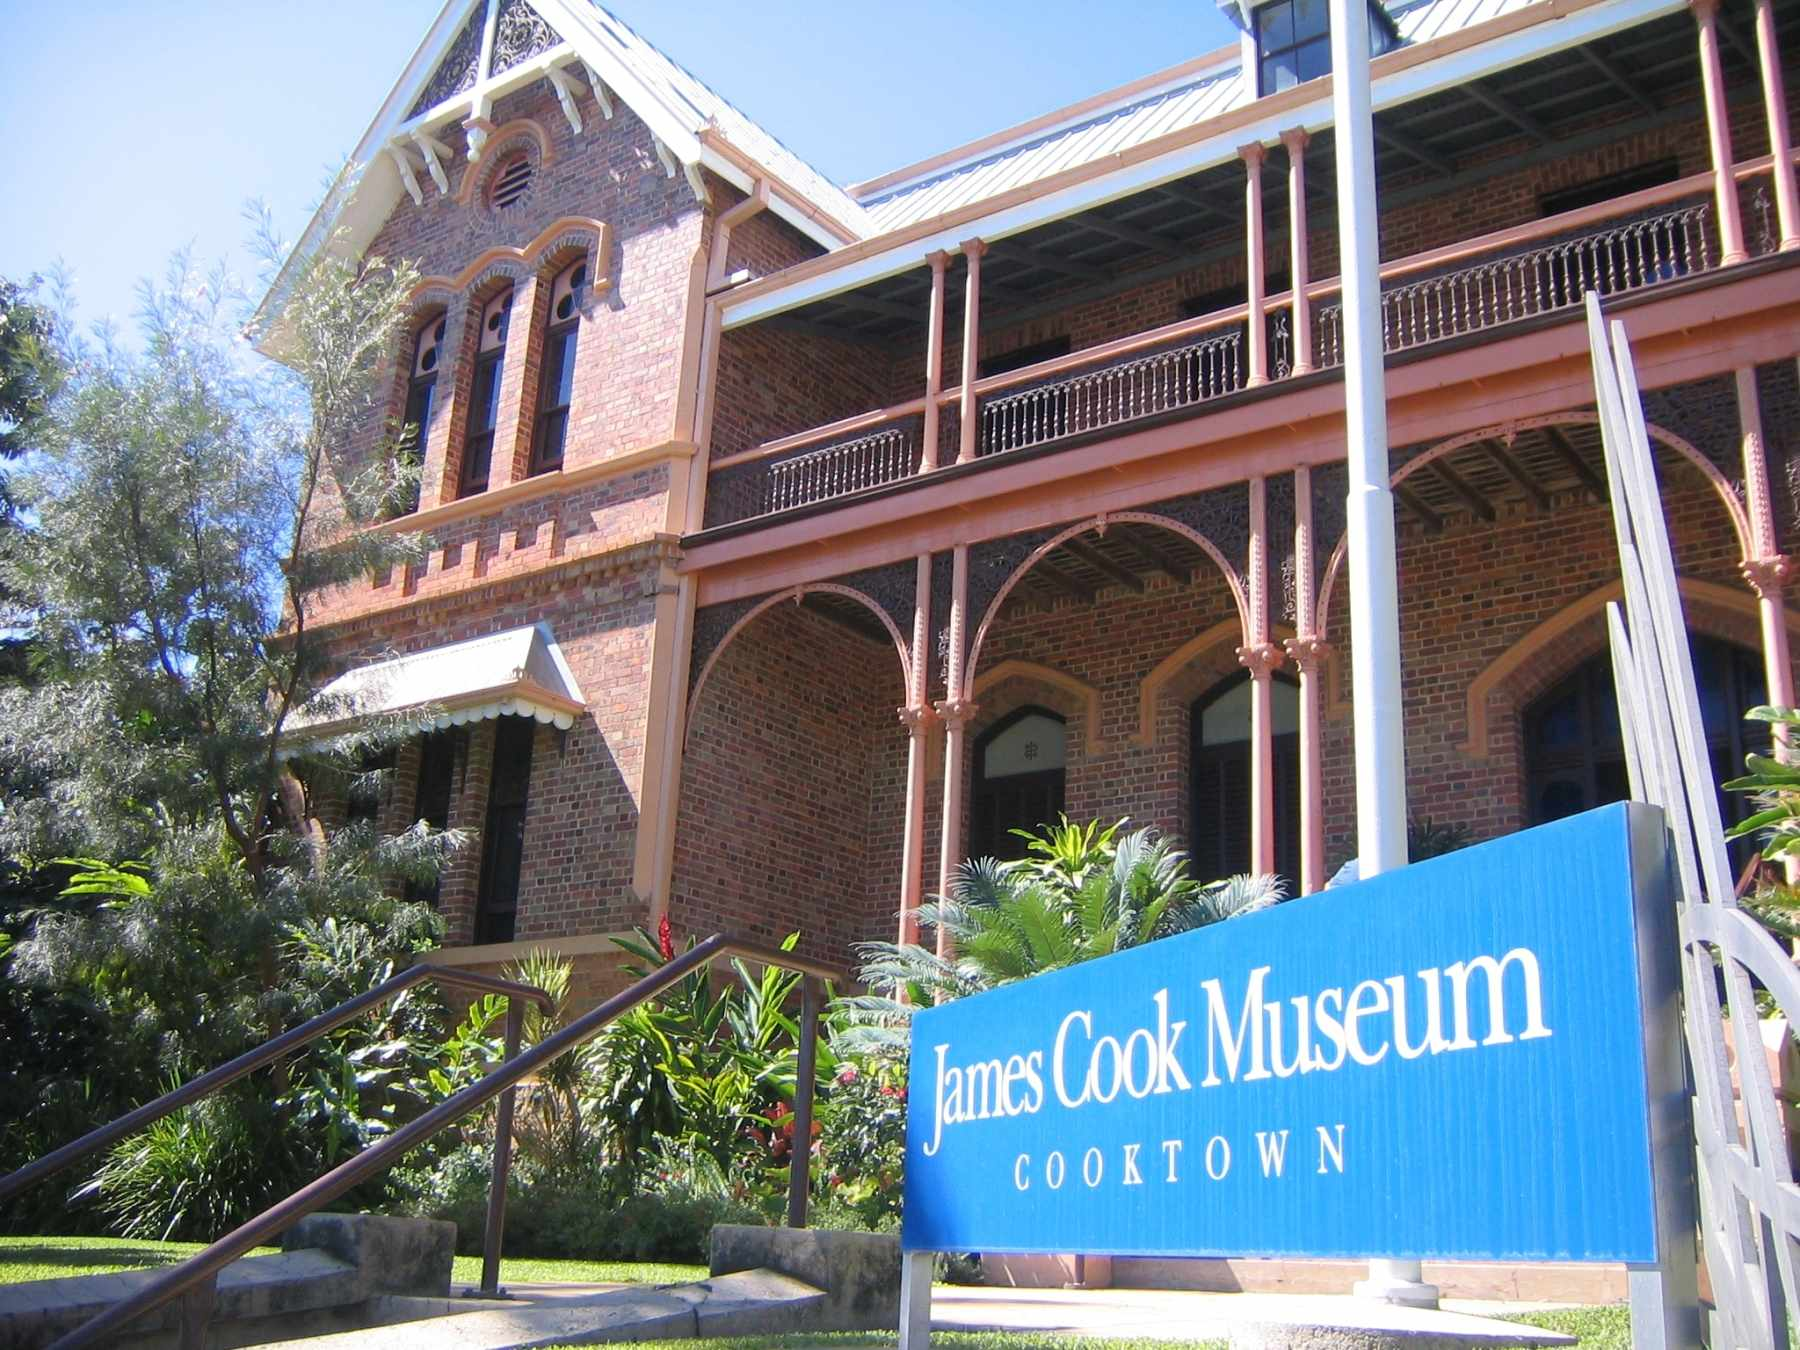 James Cook Museum Cooktown Queensland QLD Australien